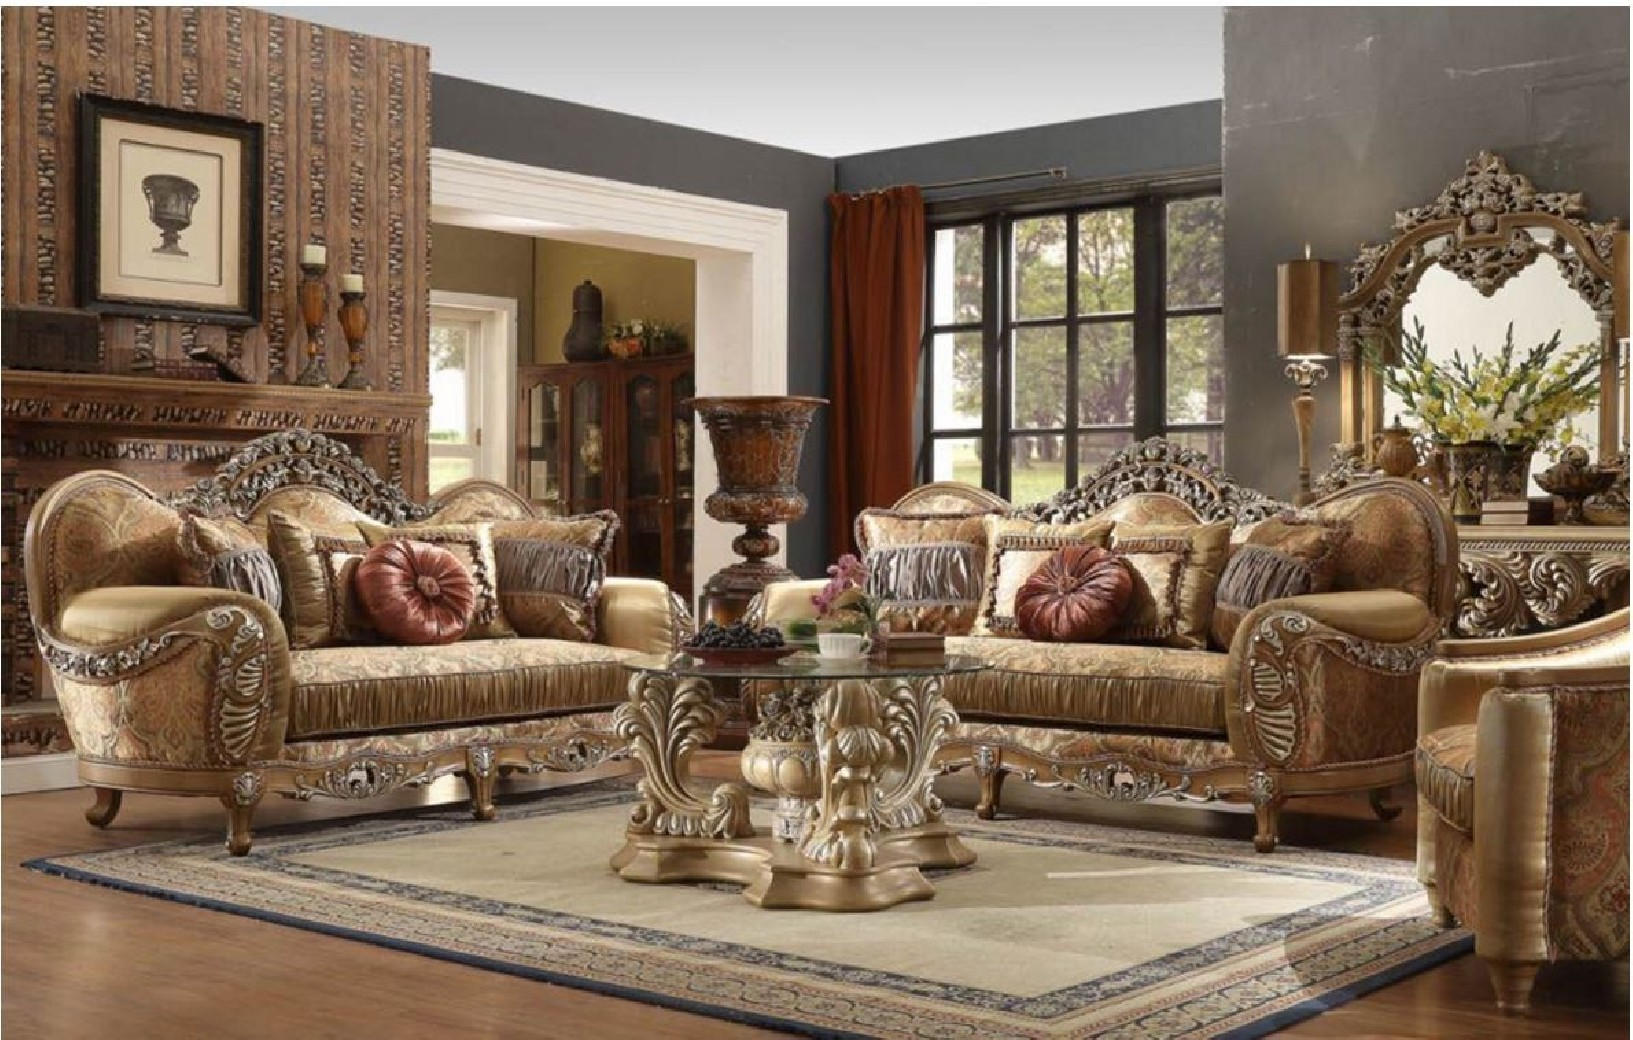 Hd 622 Homey Design Upholstery Living Room Set Victorian European Classic Design Sofa Set